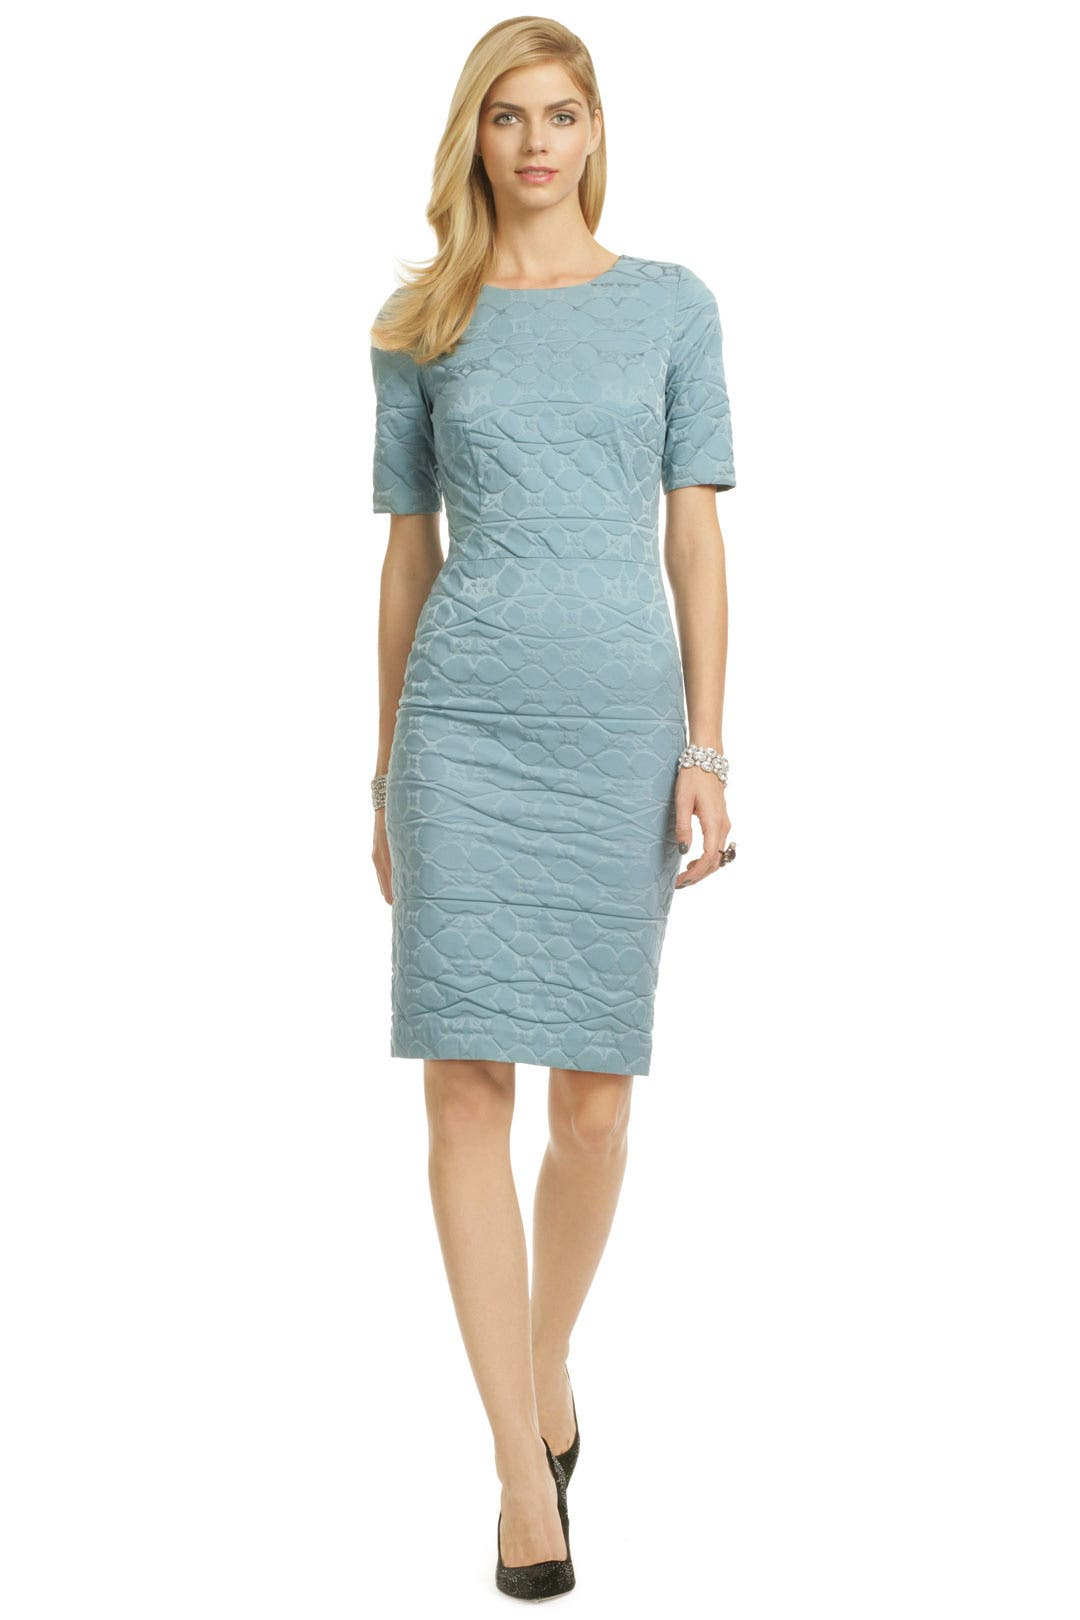 Blue Ripple Marks Sheath by Vera Wang